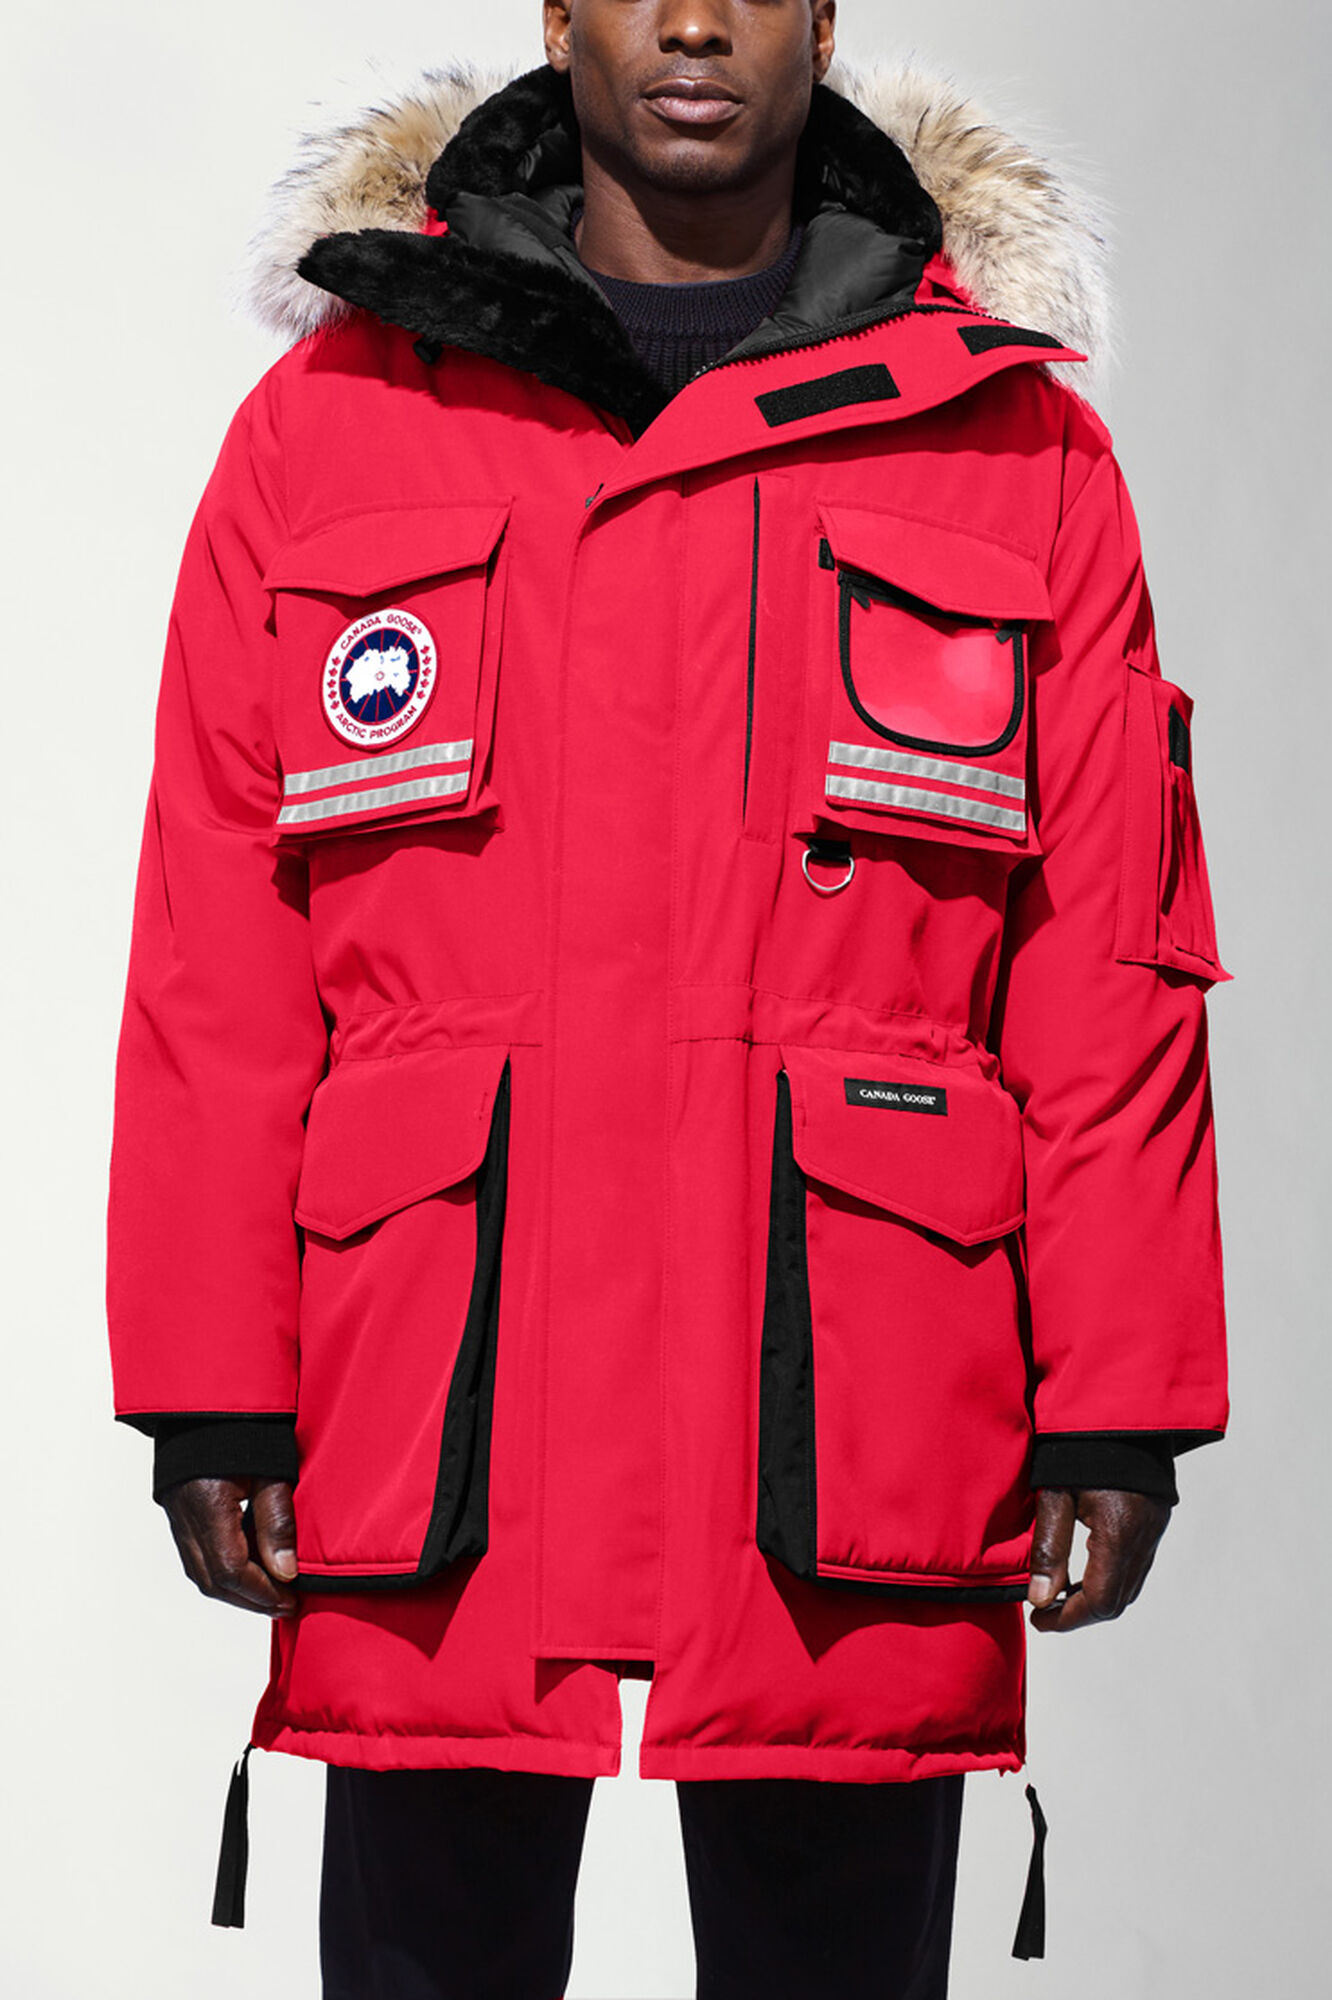 Canada Goose mens replica official - Men's Arctic Program Snow Mantra Parka | Canada Goose?